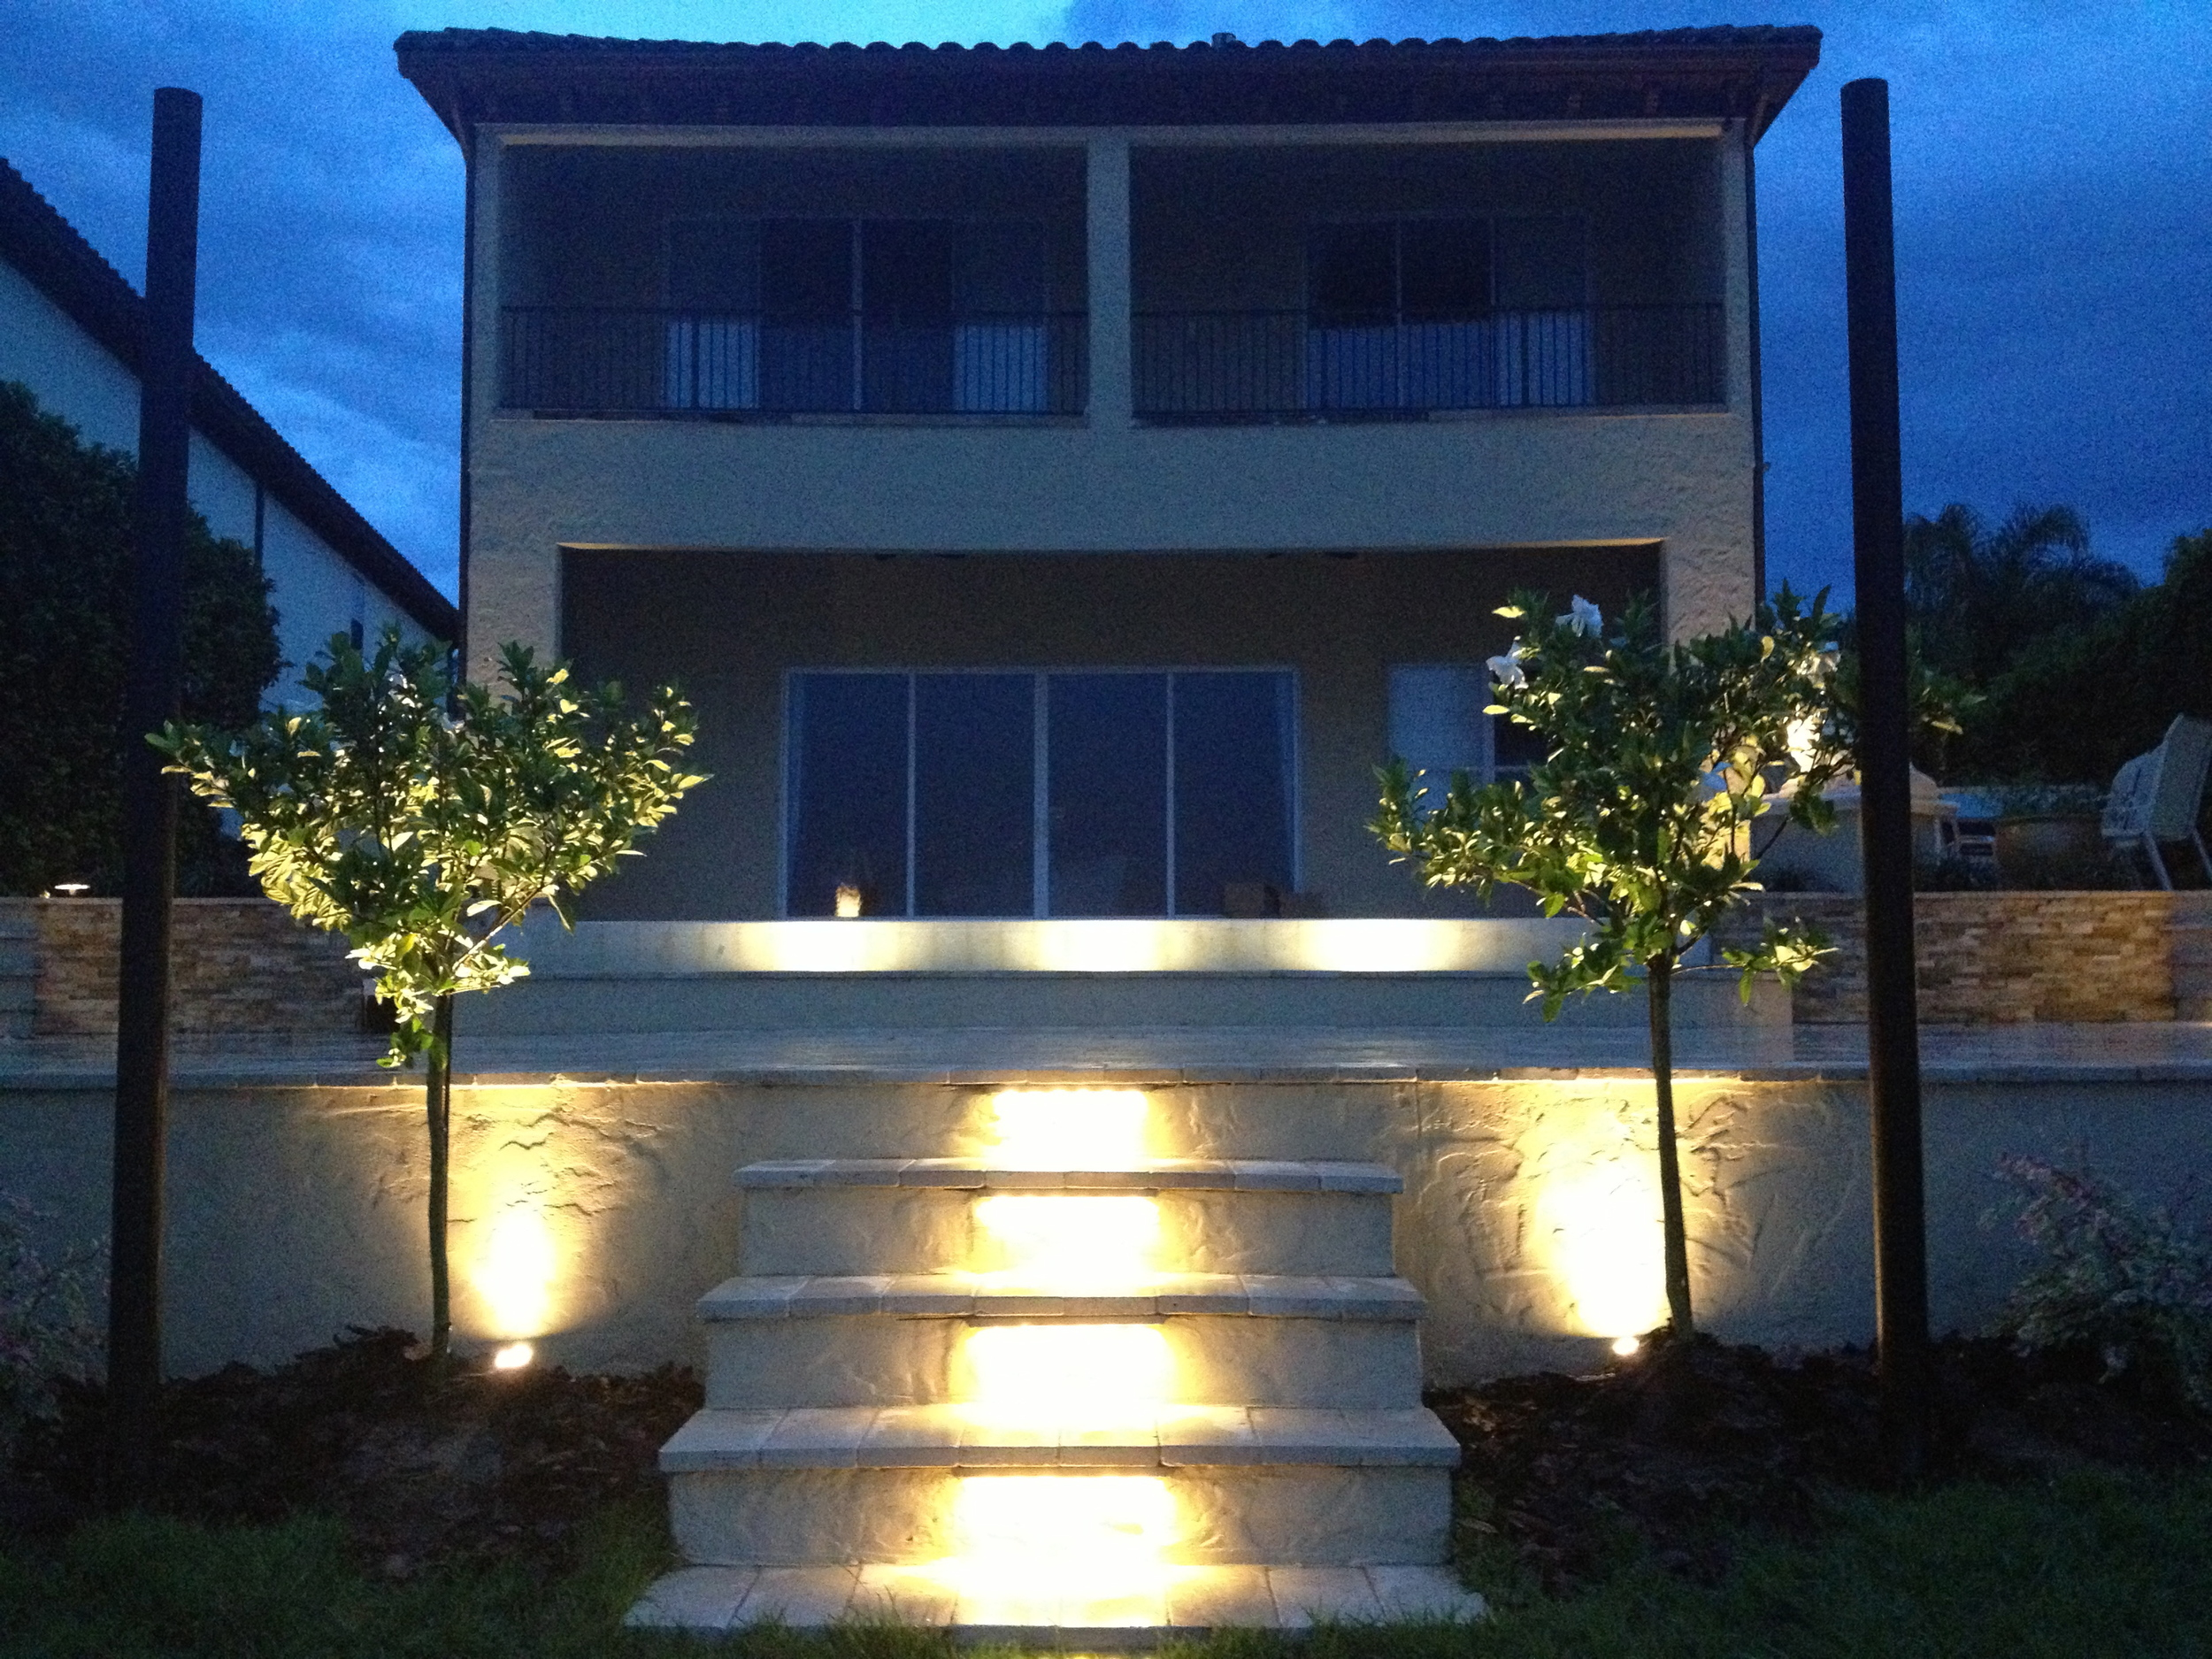 New Stepdown with Lighting from Lower Terrace to the  new Garden overlooking Sand Lake.